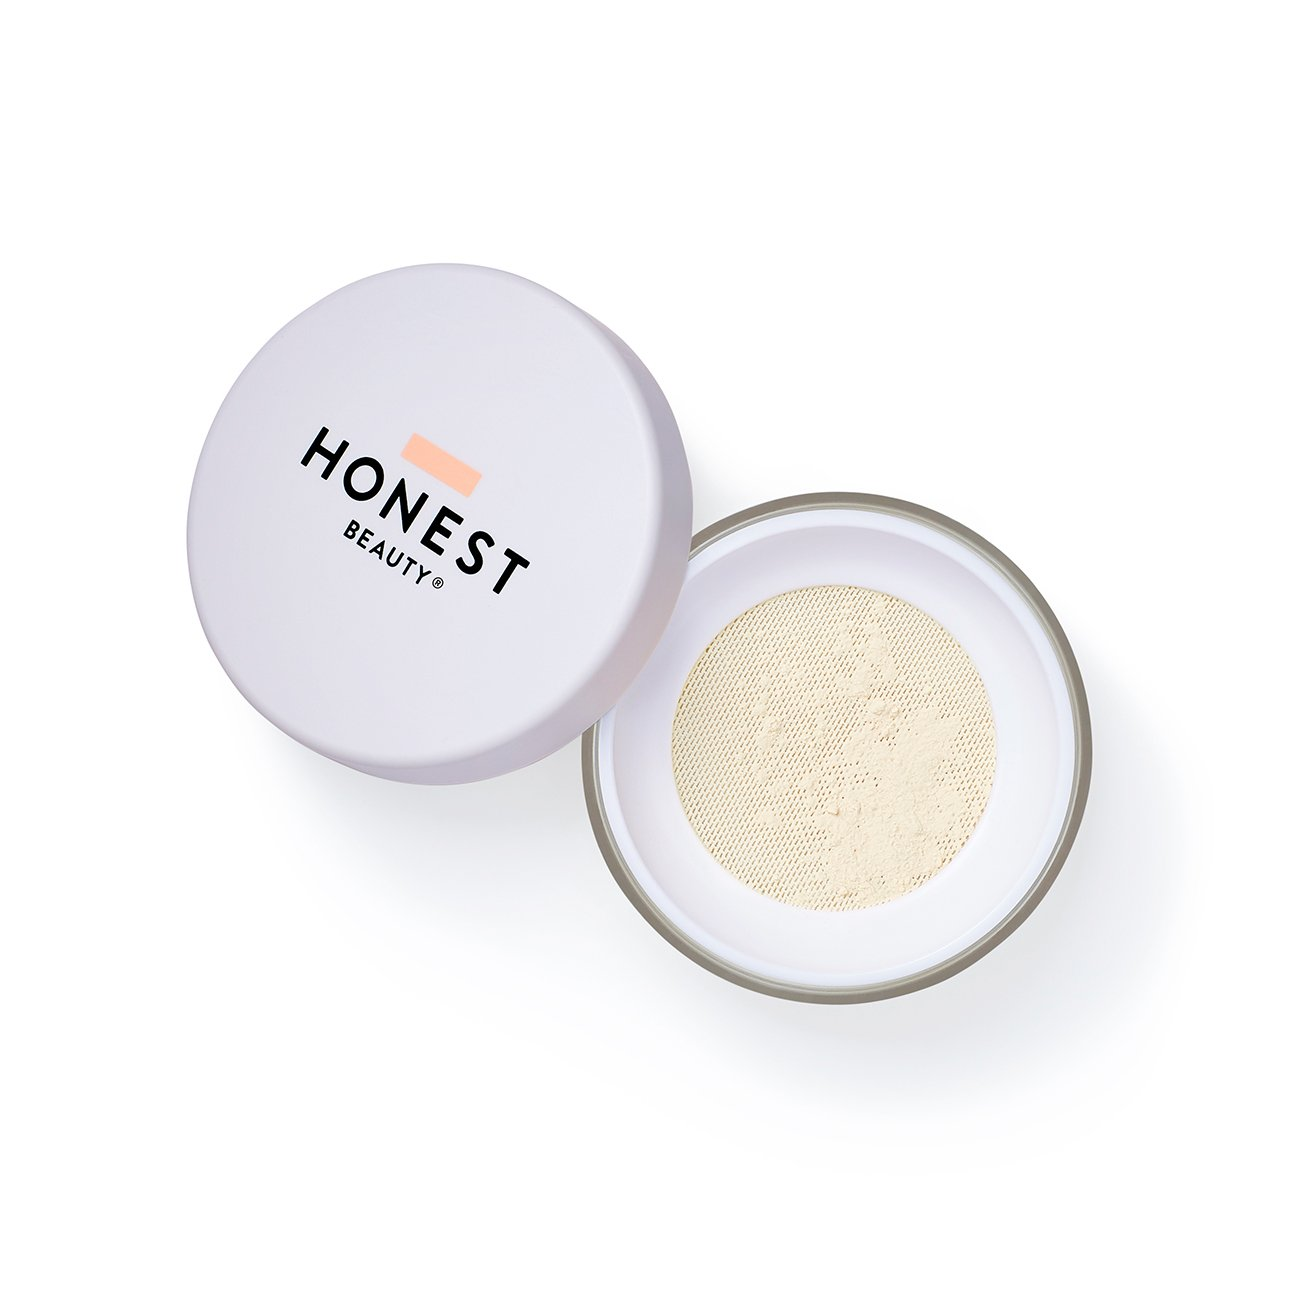 Honest Beauty Invisible Blurring Loose Powder | Blur, Mattify & Set Makeup | Talc Free, Paraben Free, Dermatologist Tested, Cruelty Free | 0.56 oz. by Honest Beauty